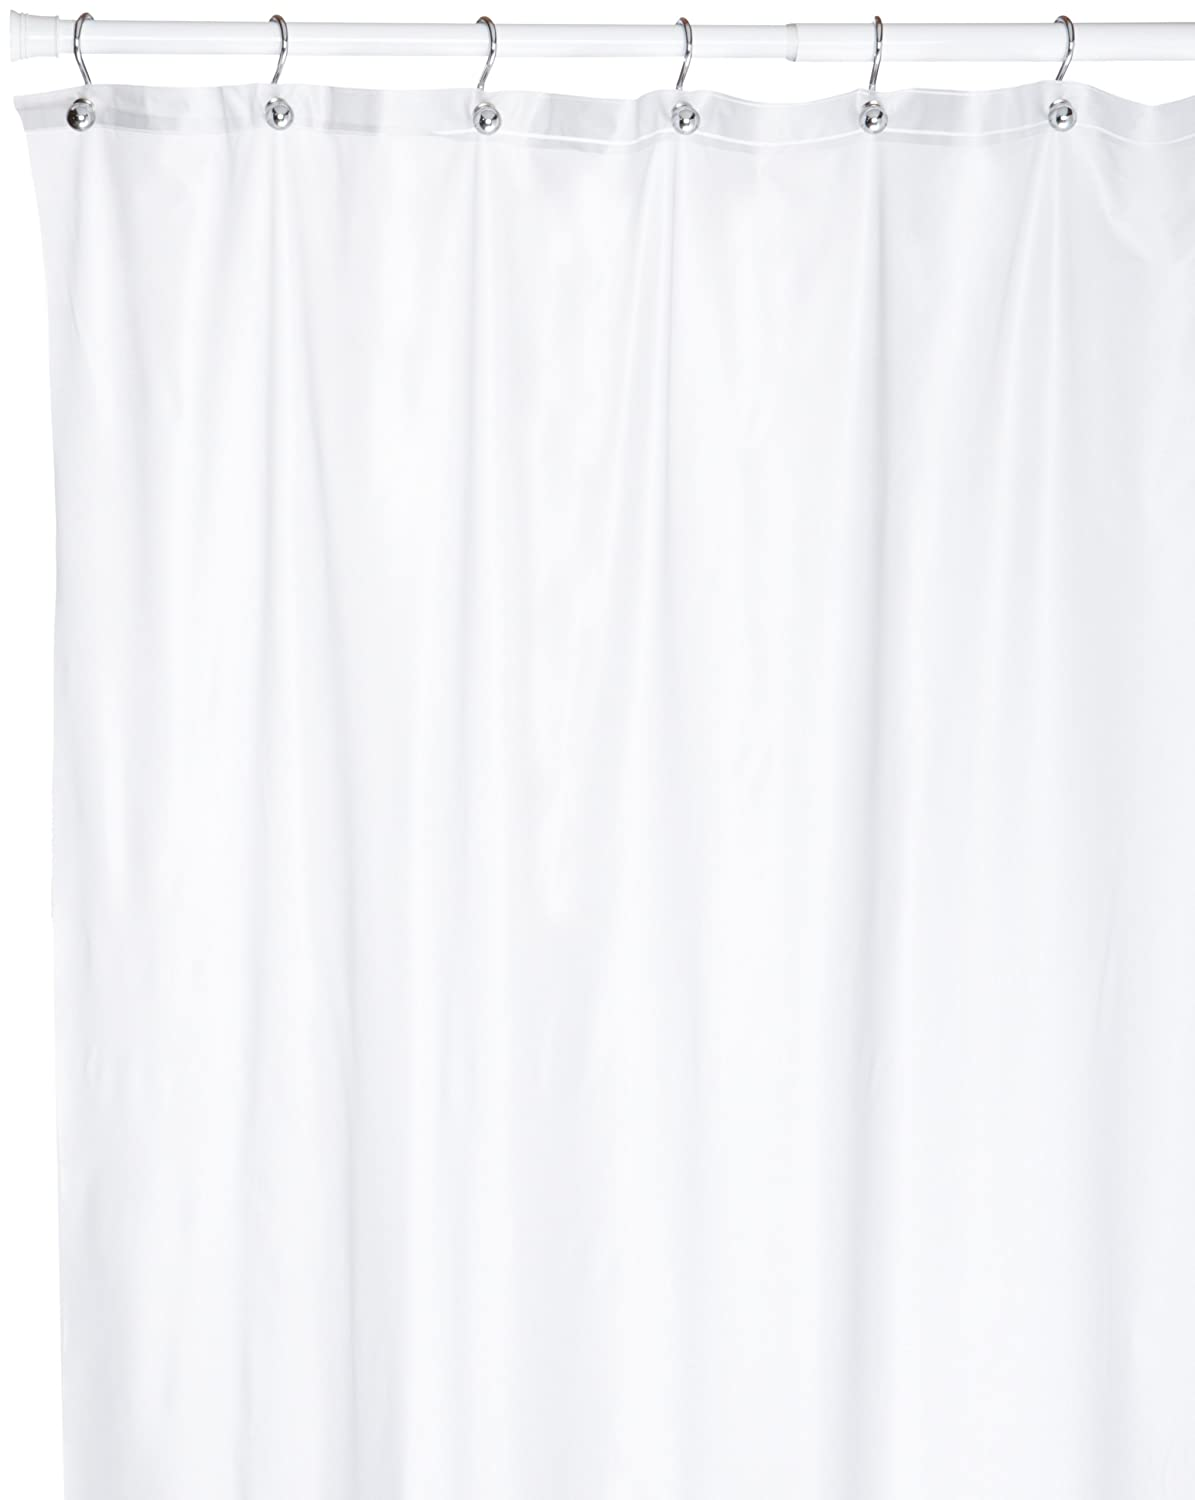 Amazon.com: Carnation Home Fashions 72 Long By 108 Inch Wide Extra Wide  Vinyl Shower Curtain, Frosted Clear: Home U0026 Kitchen